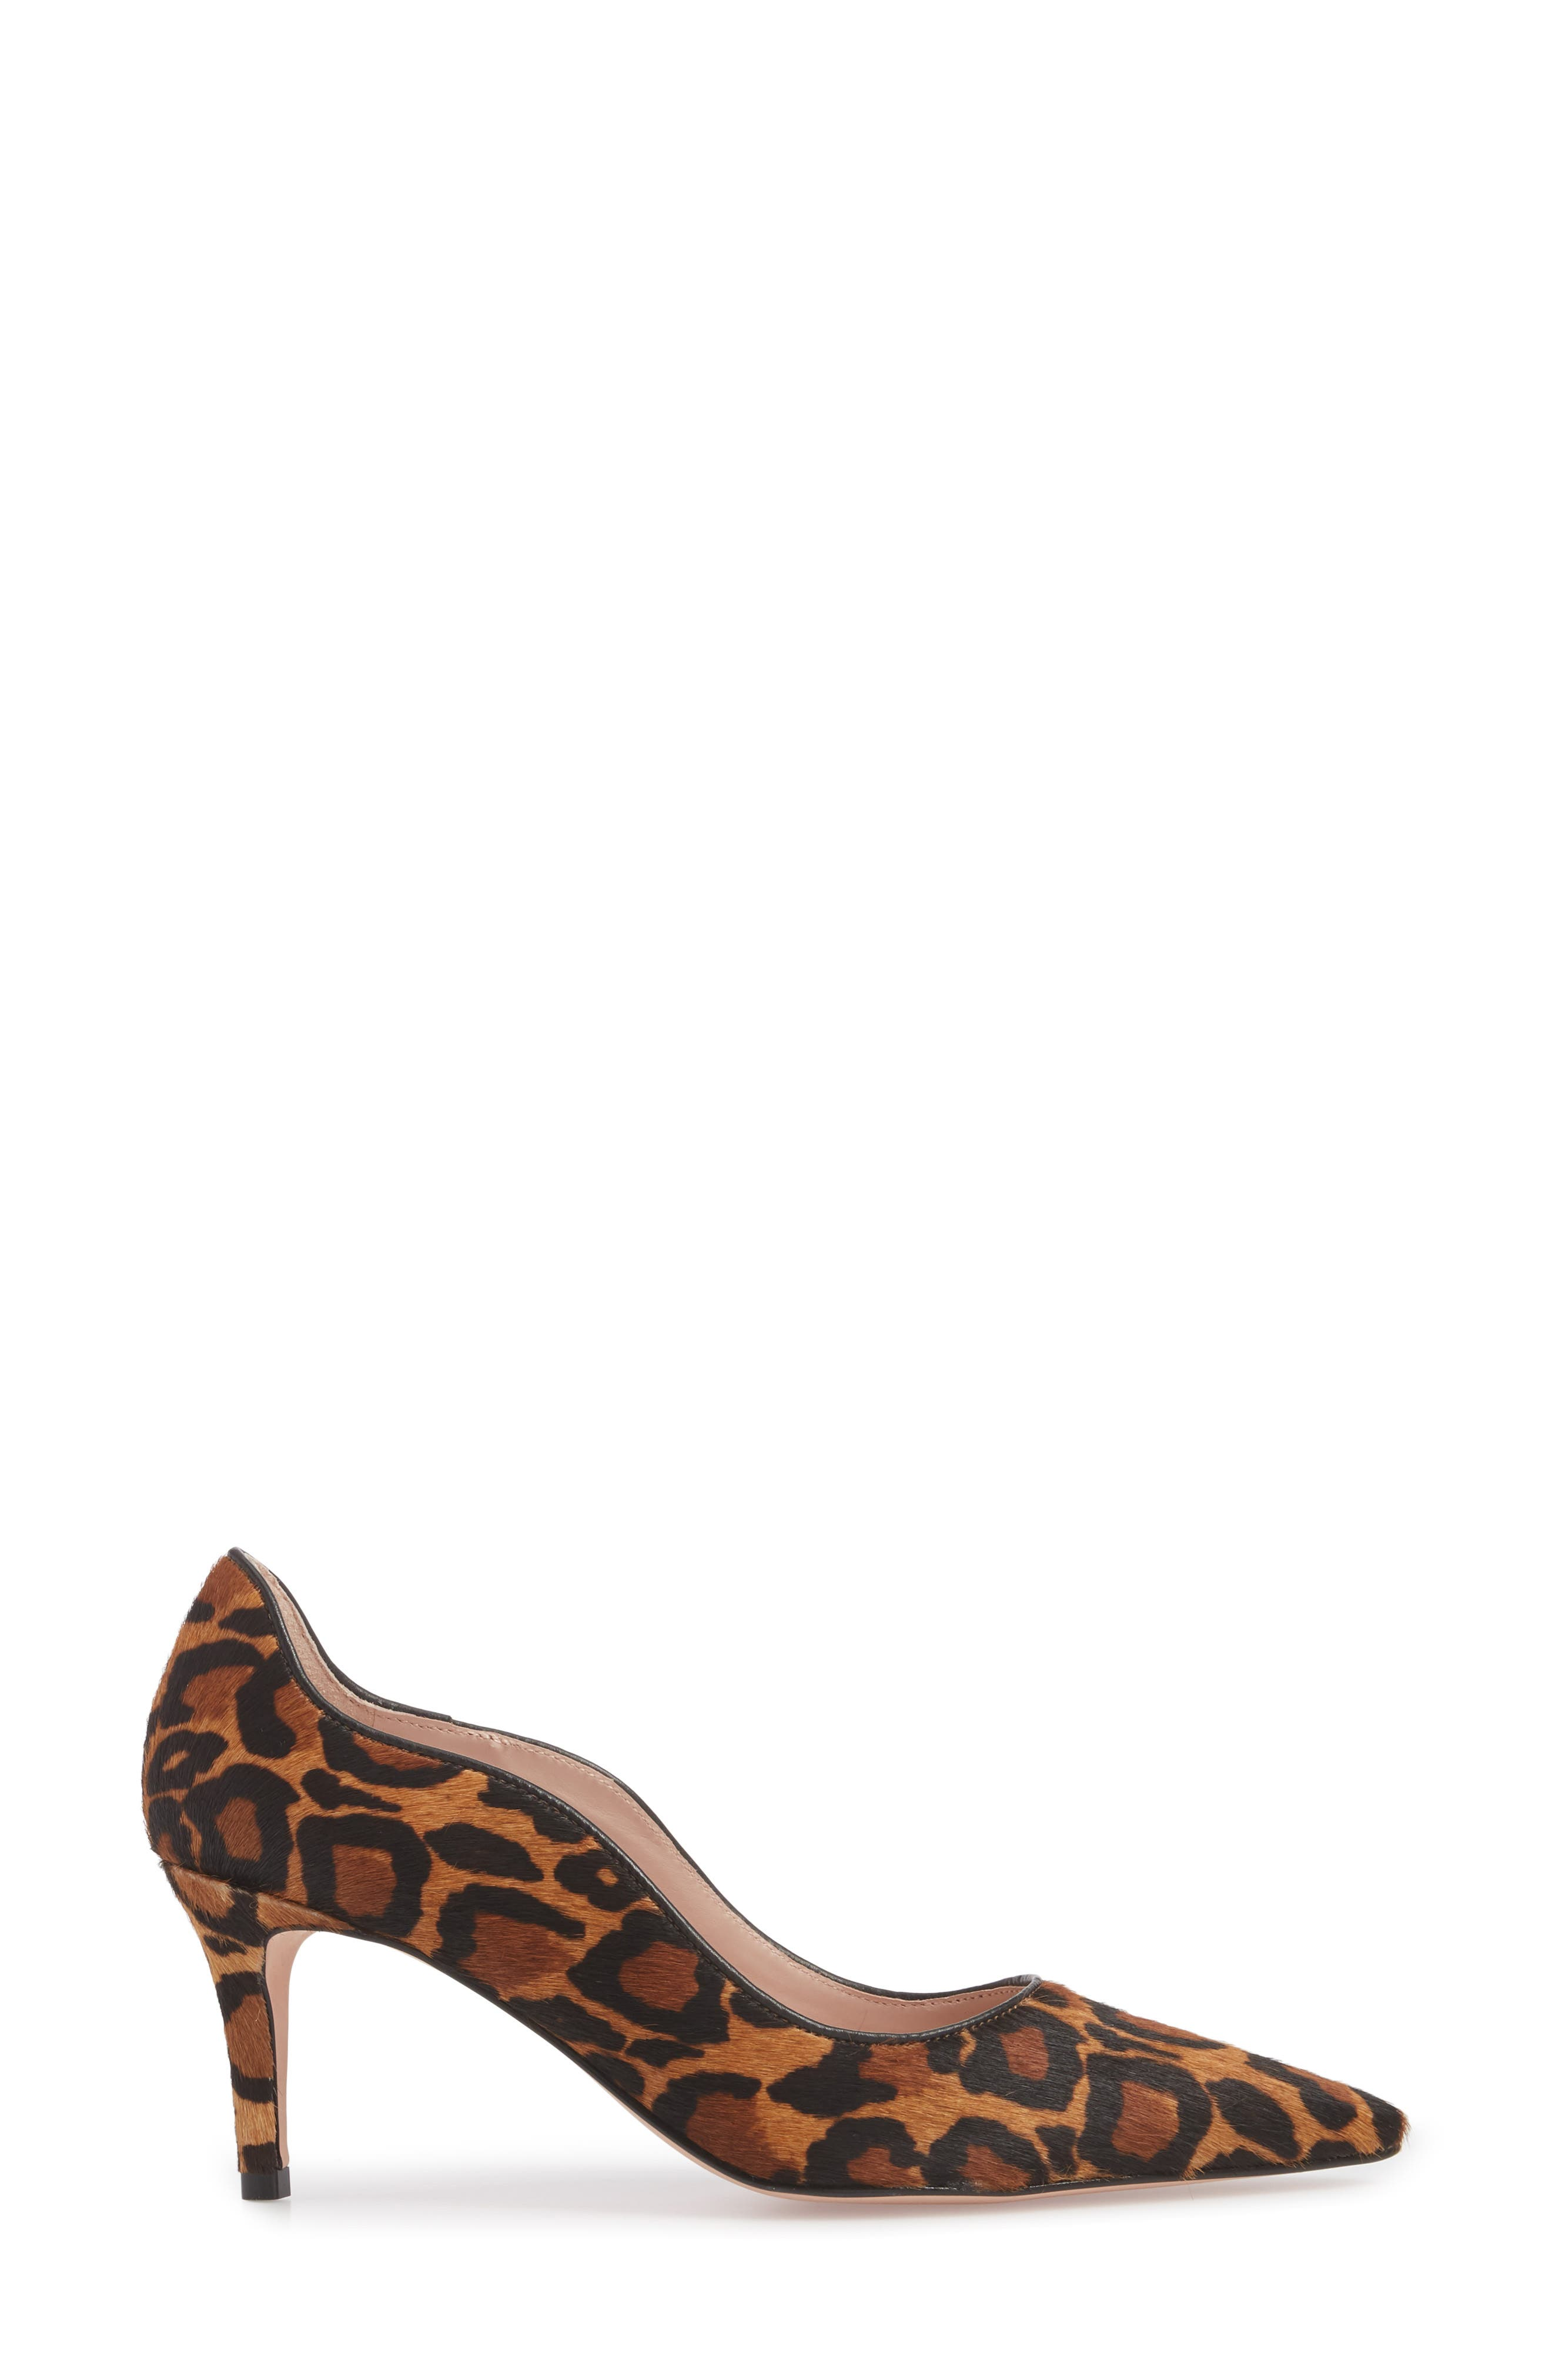 Anika 70 Pump,                             Alternate thumbnail 3, color,                             CAMEL MULTI HAIR CALF